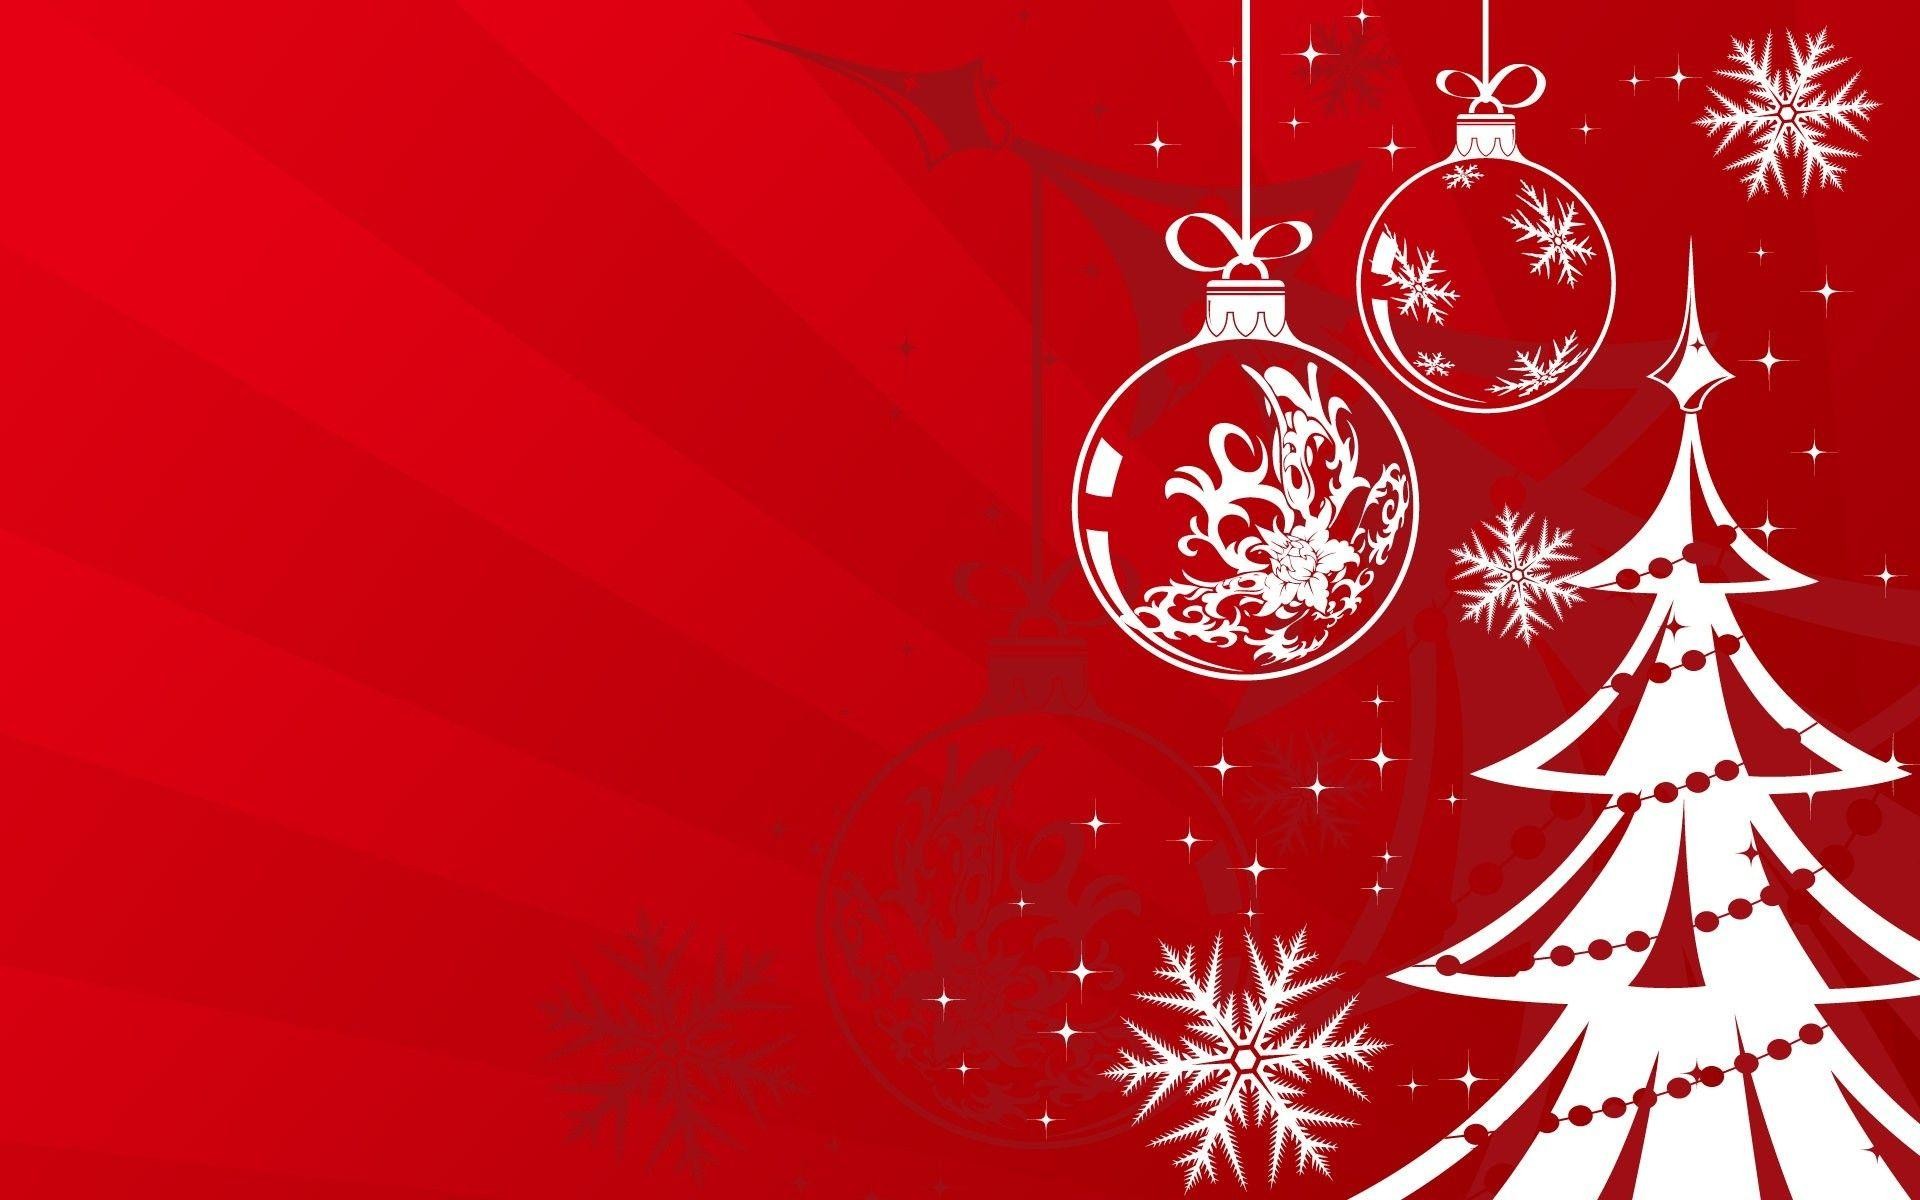 Christmas Backgrounds For Photoshop · Christmas Backgrounds   Best ...